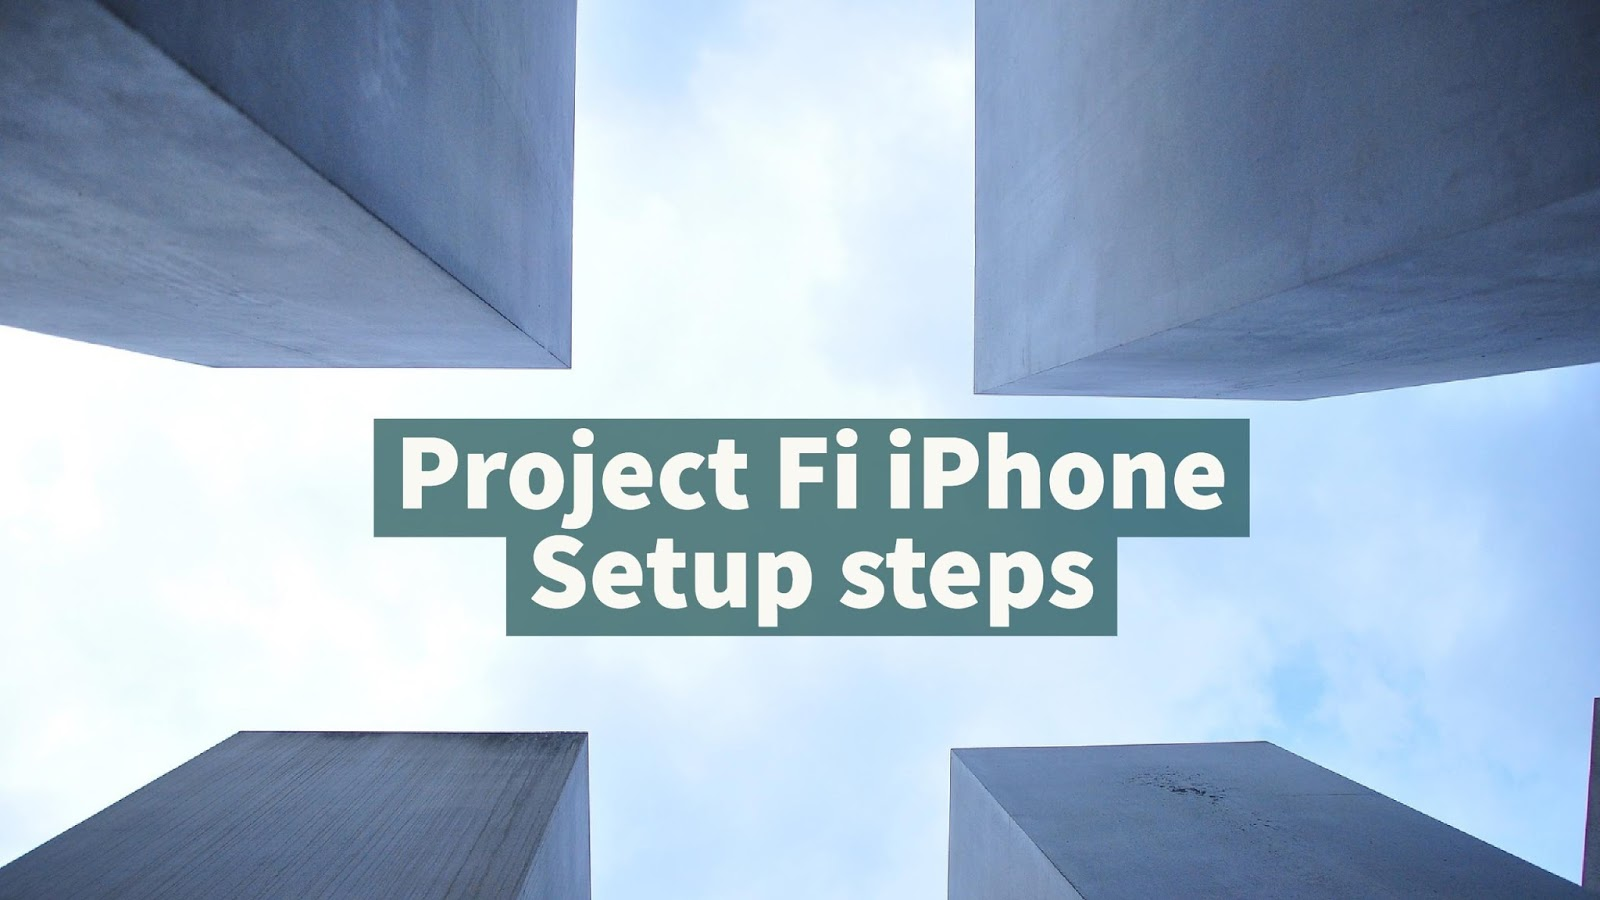 project fi iPhone setup steps by step.